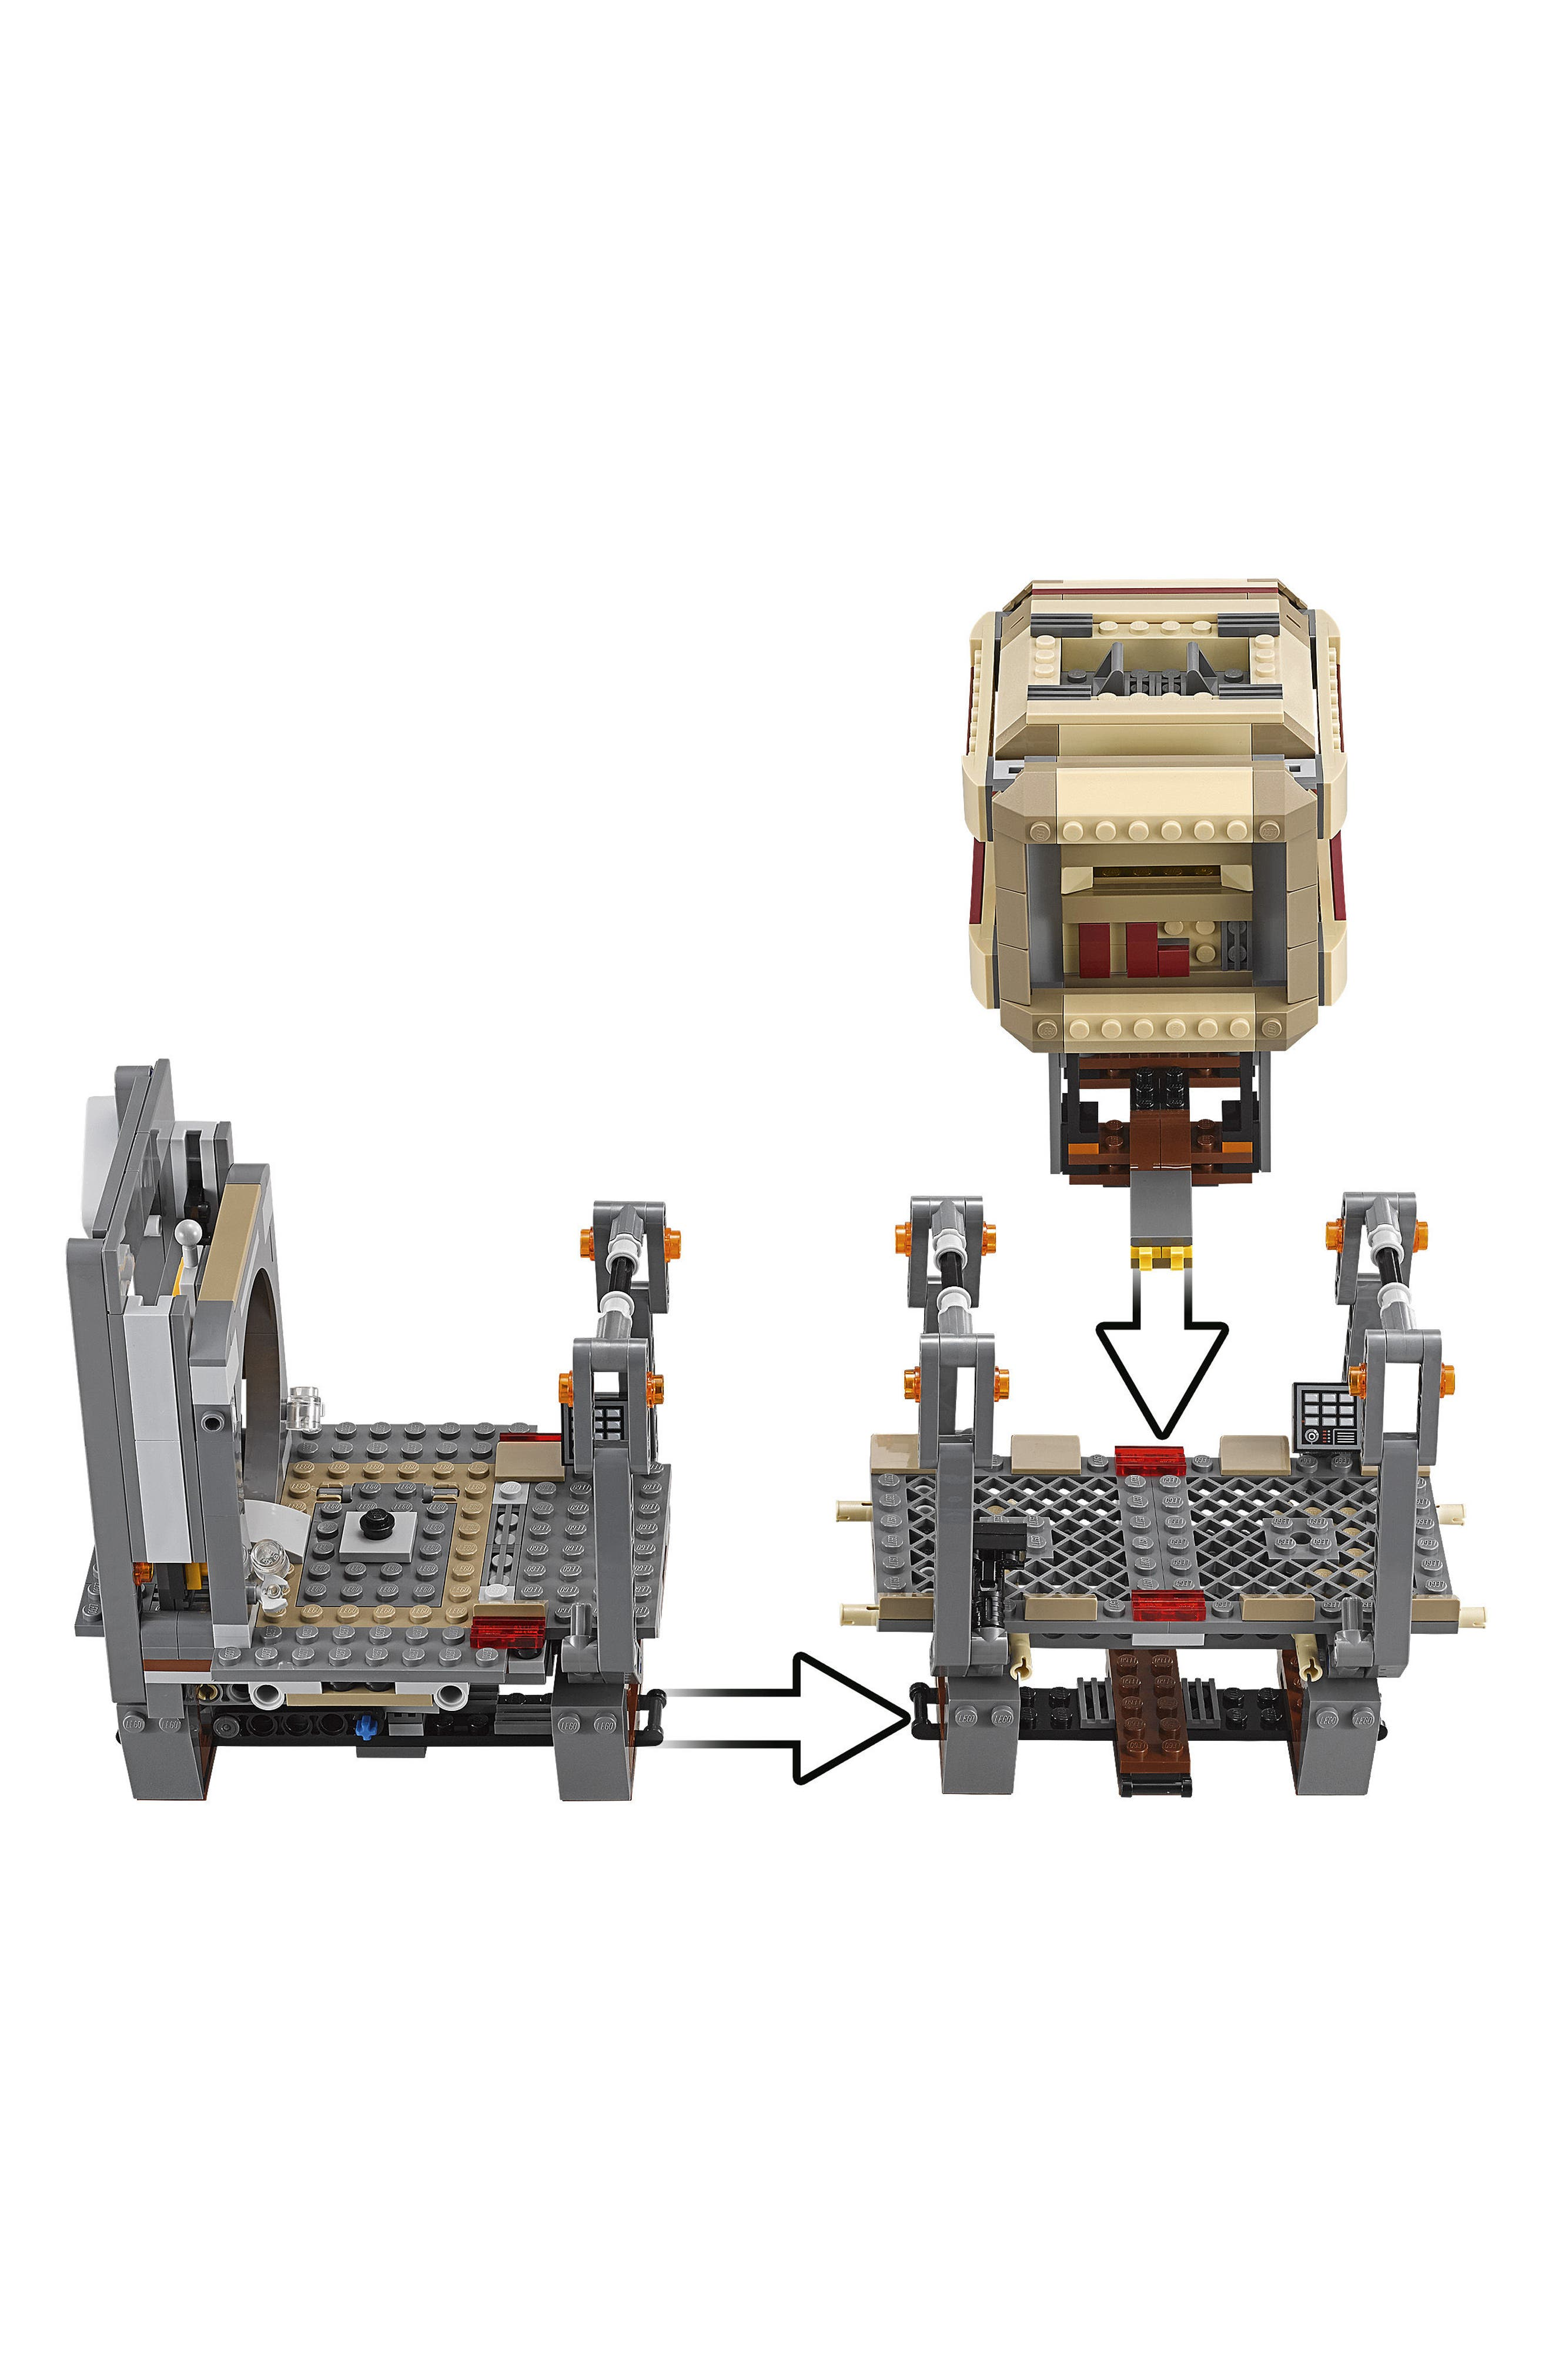 Star Wars<sup>™</sup>: The Force Awakens Rathtar<sup>™</sup> Escape Play Set - 75180,                             Alternate thumbnail 4, color,                             Multi